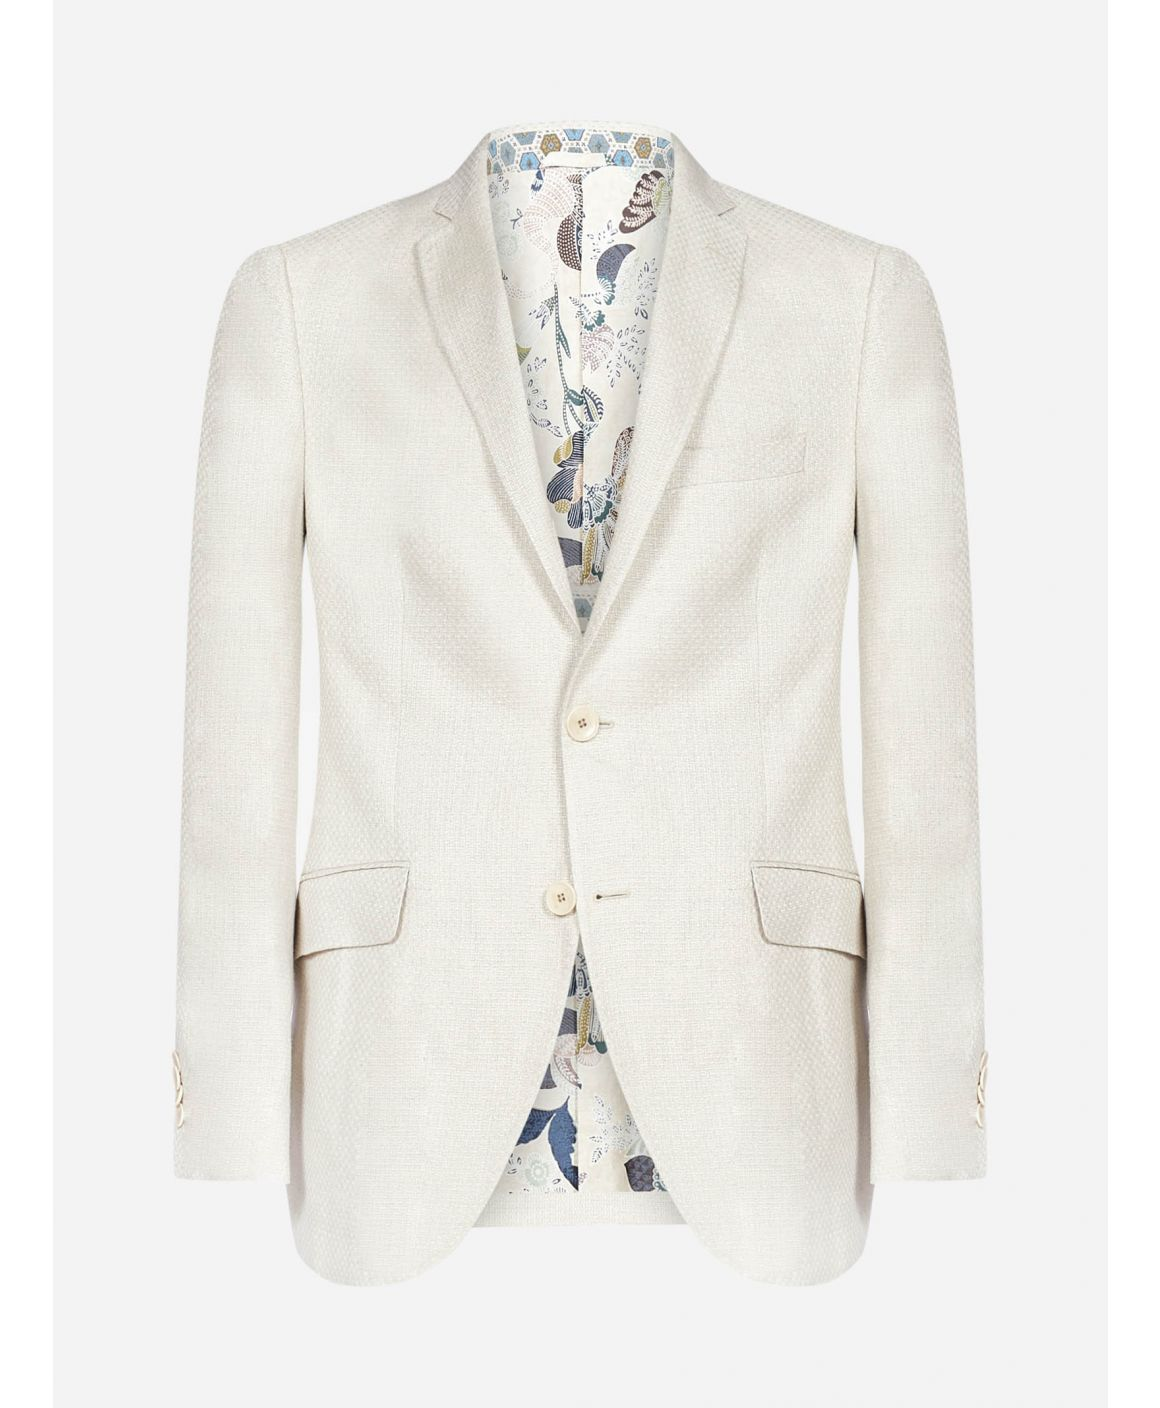 Linen and hemp textured blazer